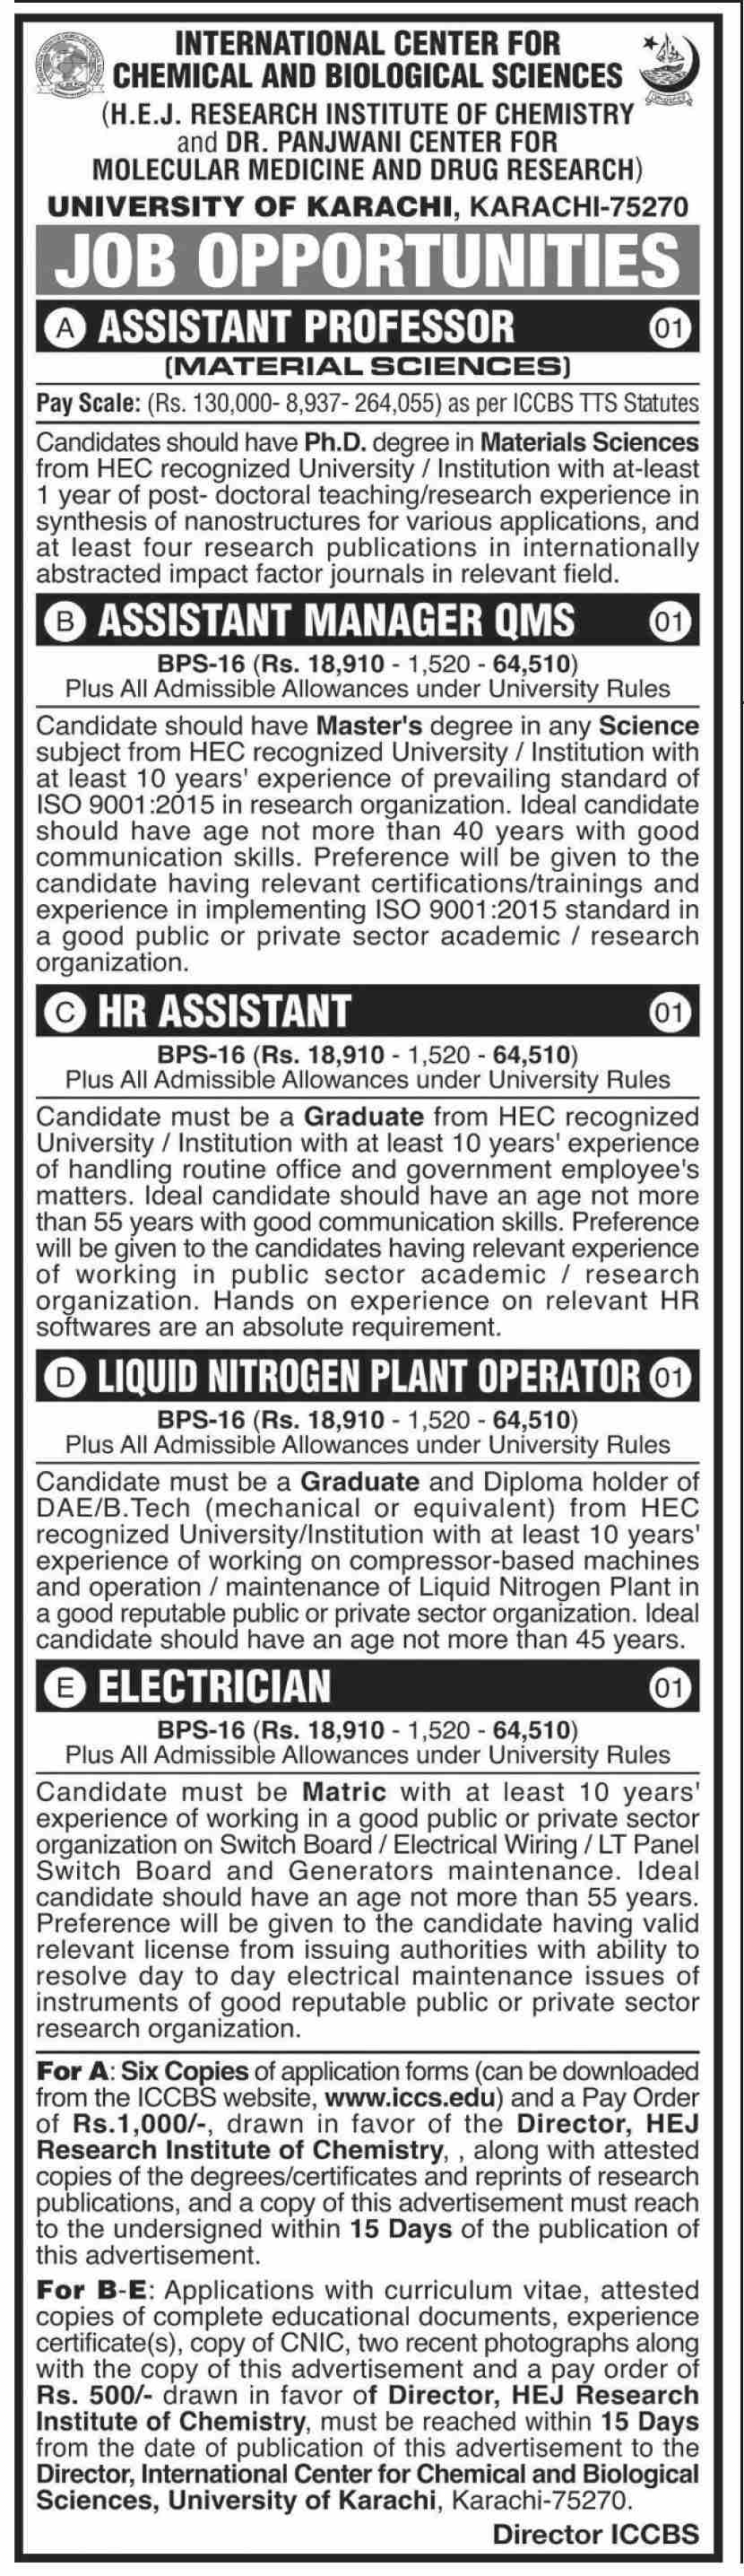 International Center For Chemical & Biological Sciences jobs newspaper ad for Assistant Manager Qms in Karachi on 2021-02-23